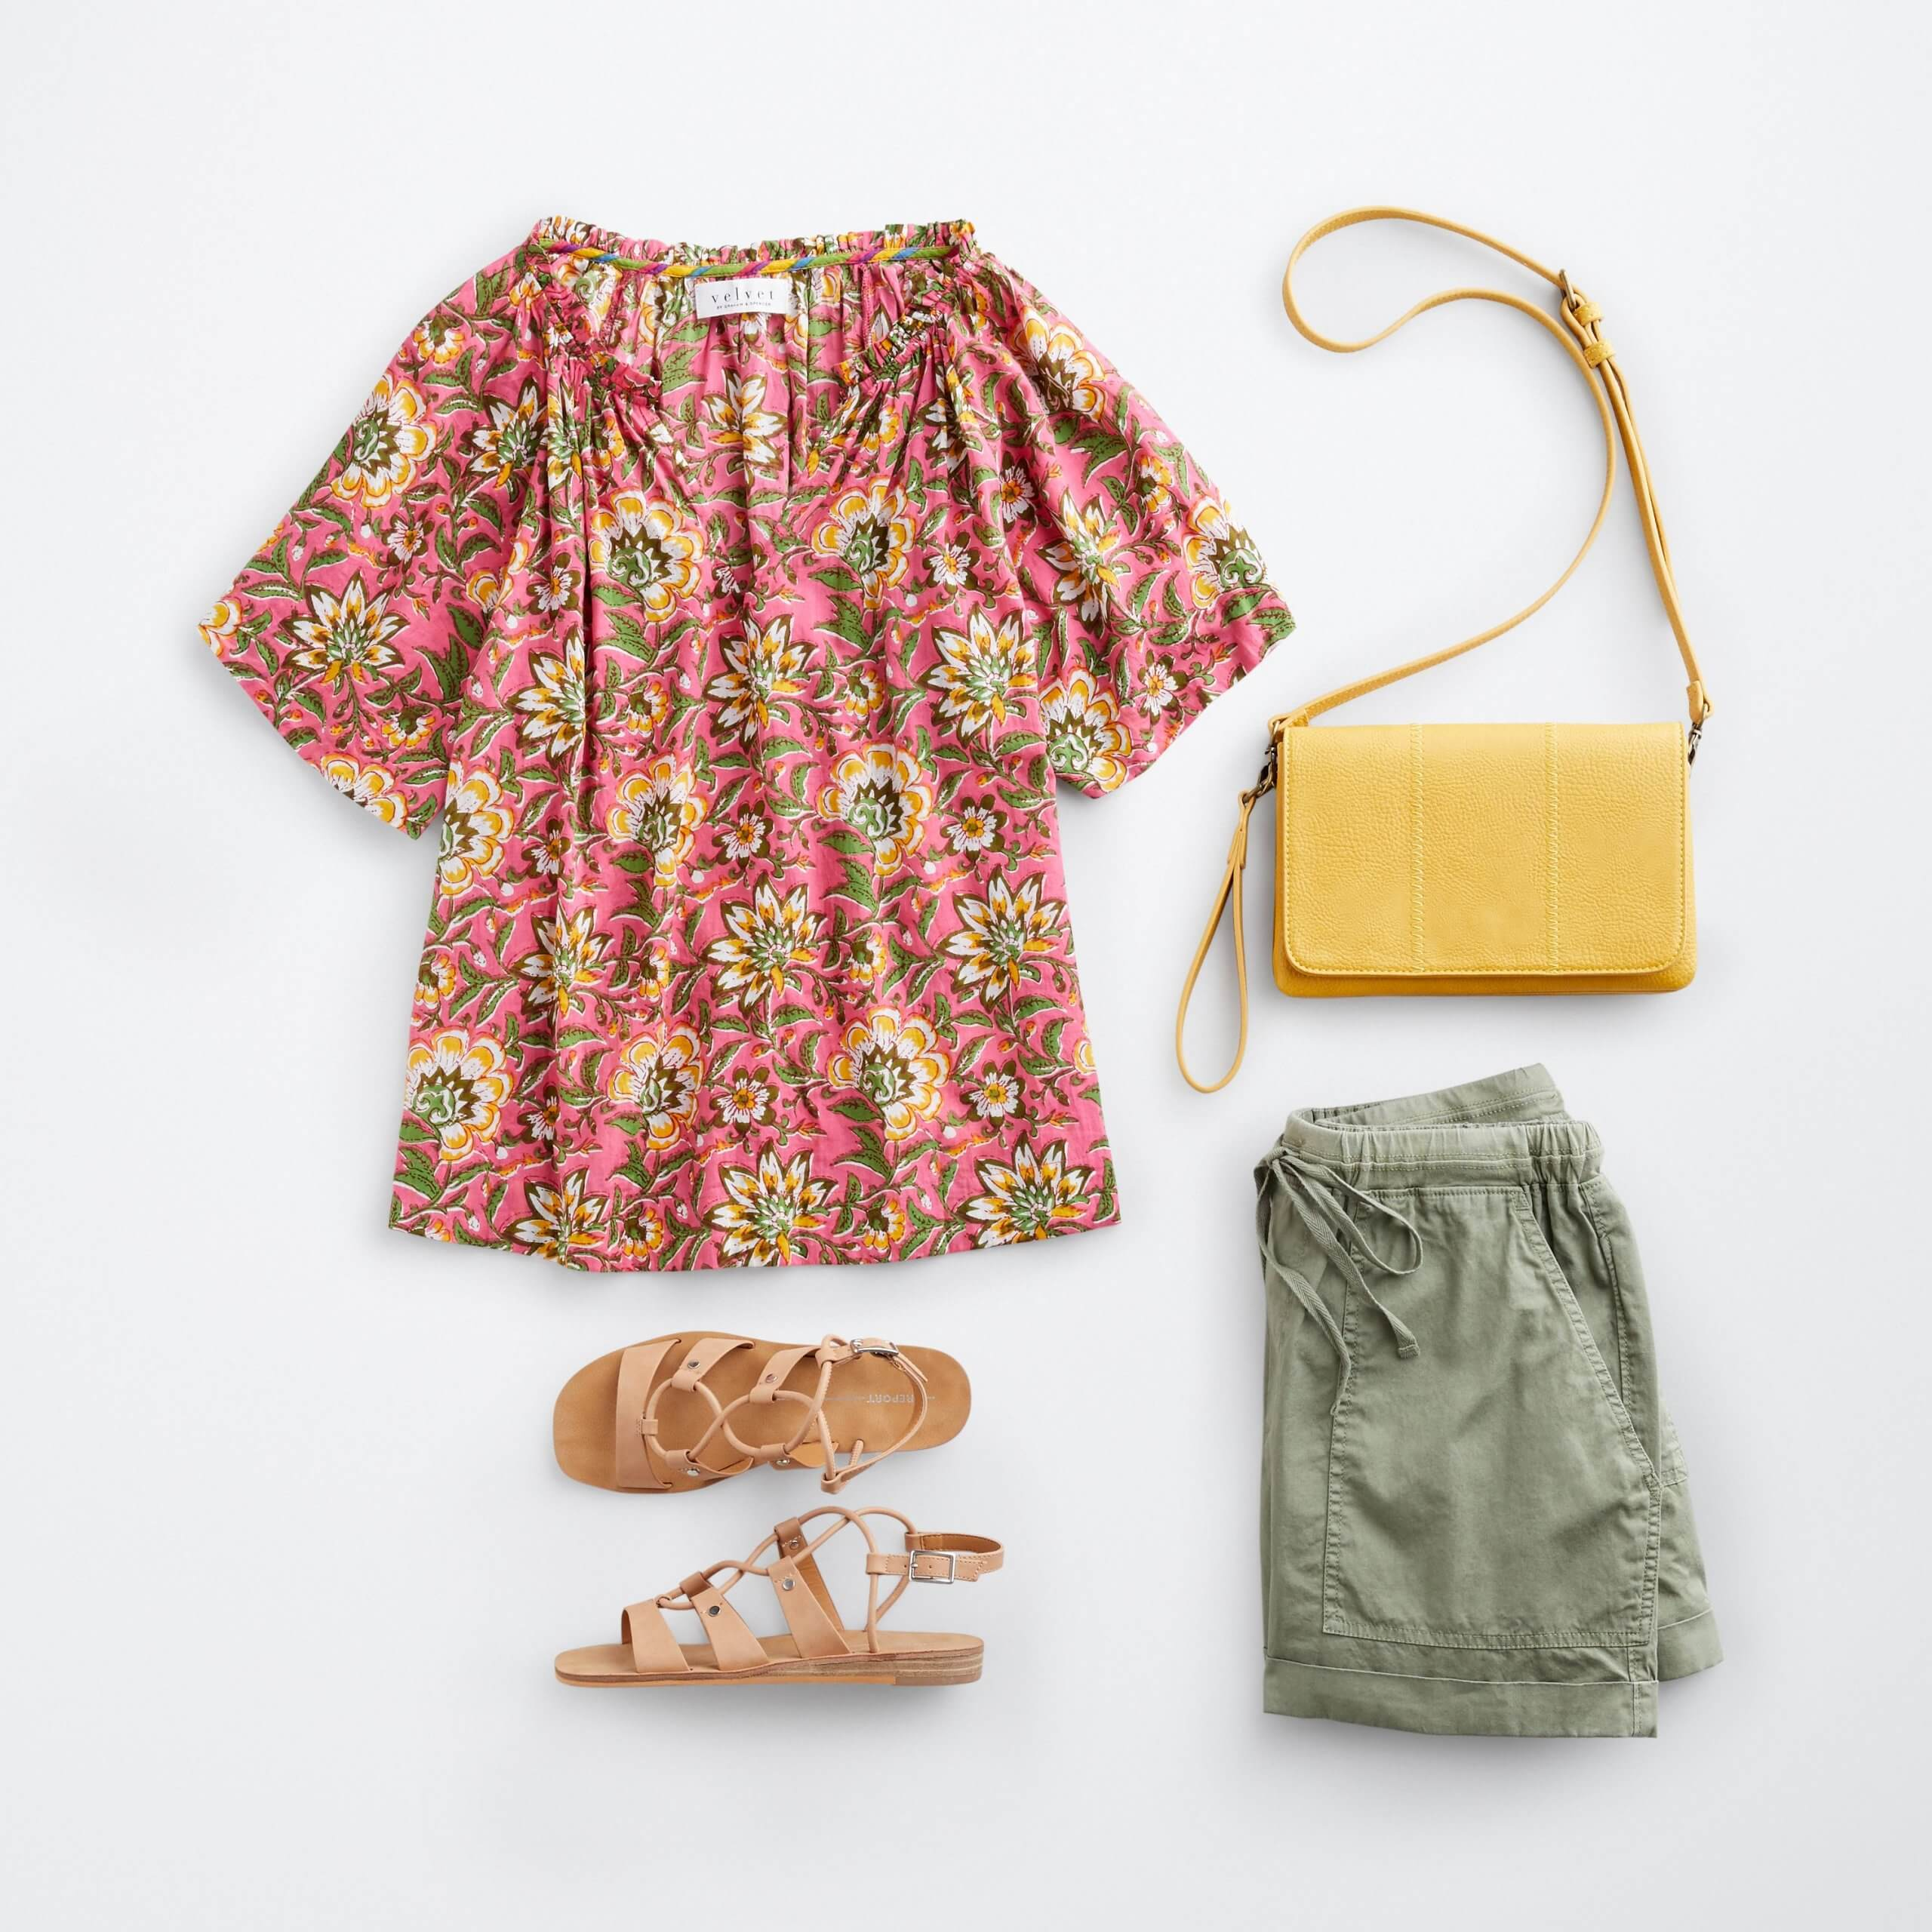 Stitch Fix women's boho outfit featuring red floral print top with yellow crossbody bag, olive green drawstring shorts and brown strappy sandals.